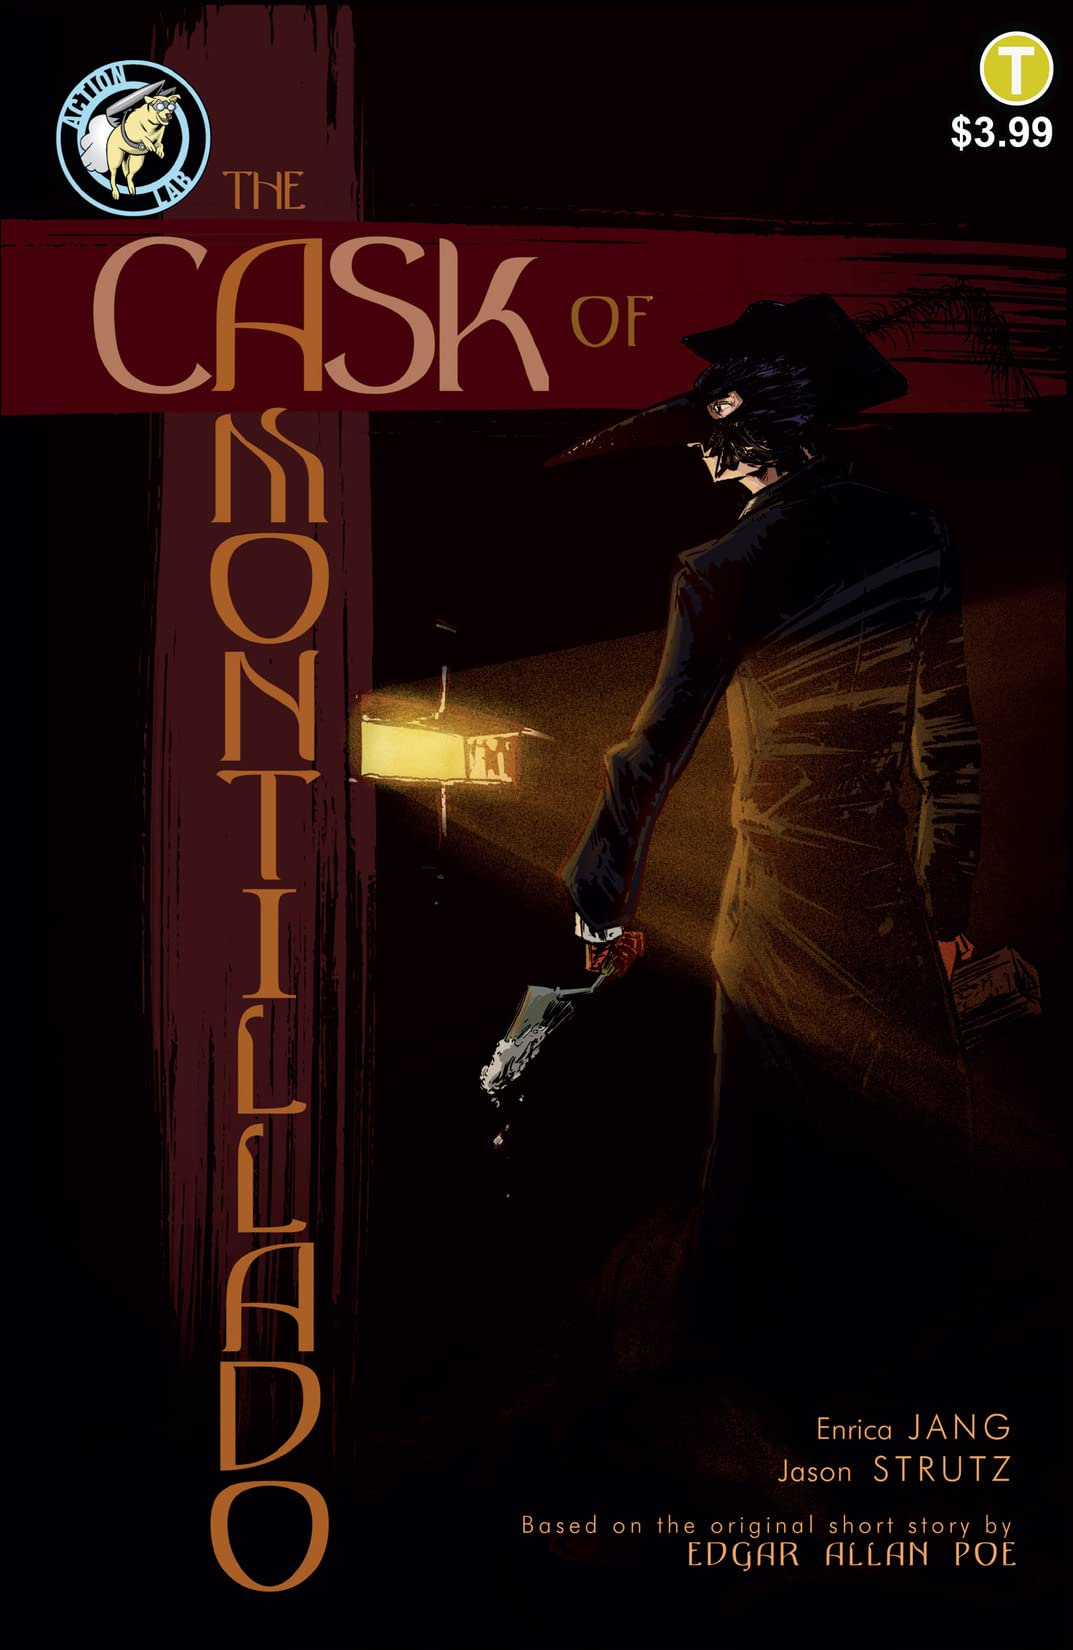 The Cask of Amontillado #1